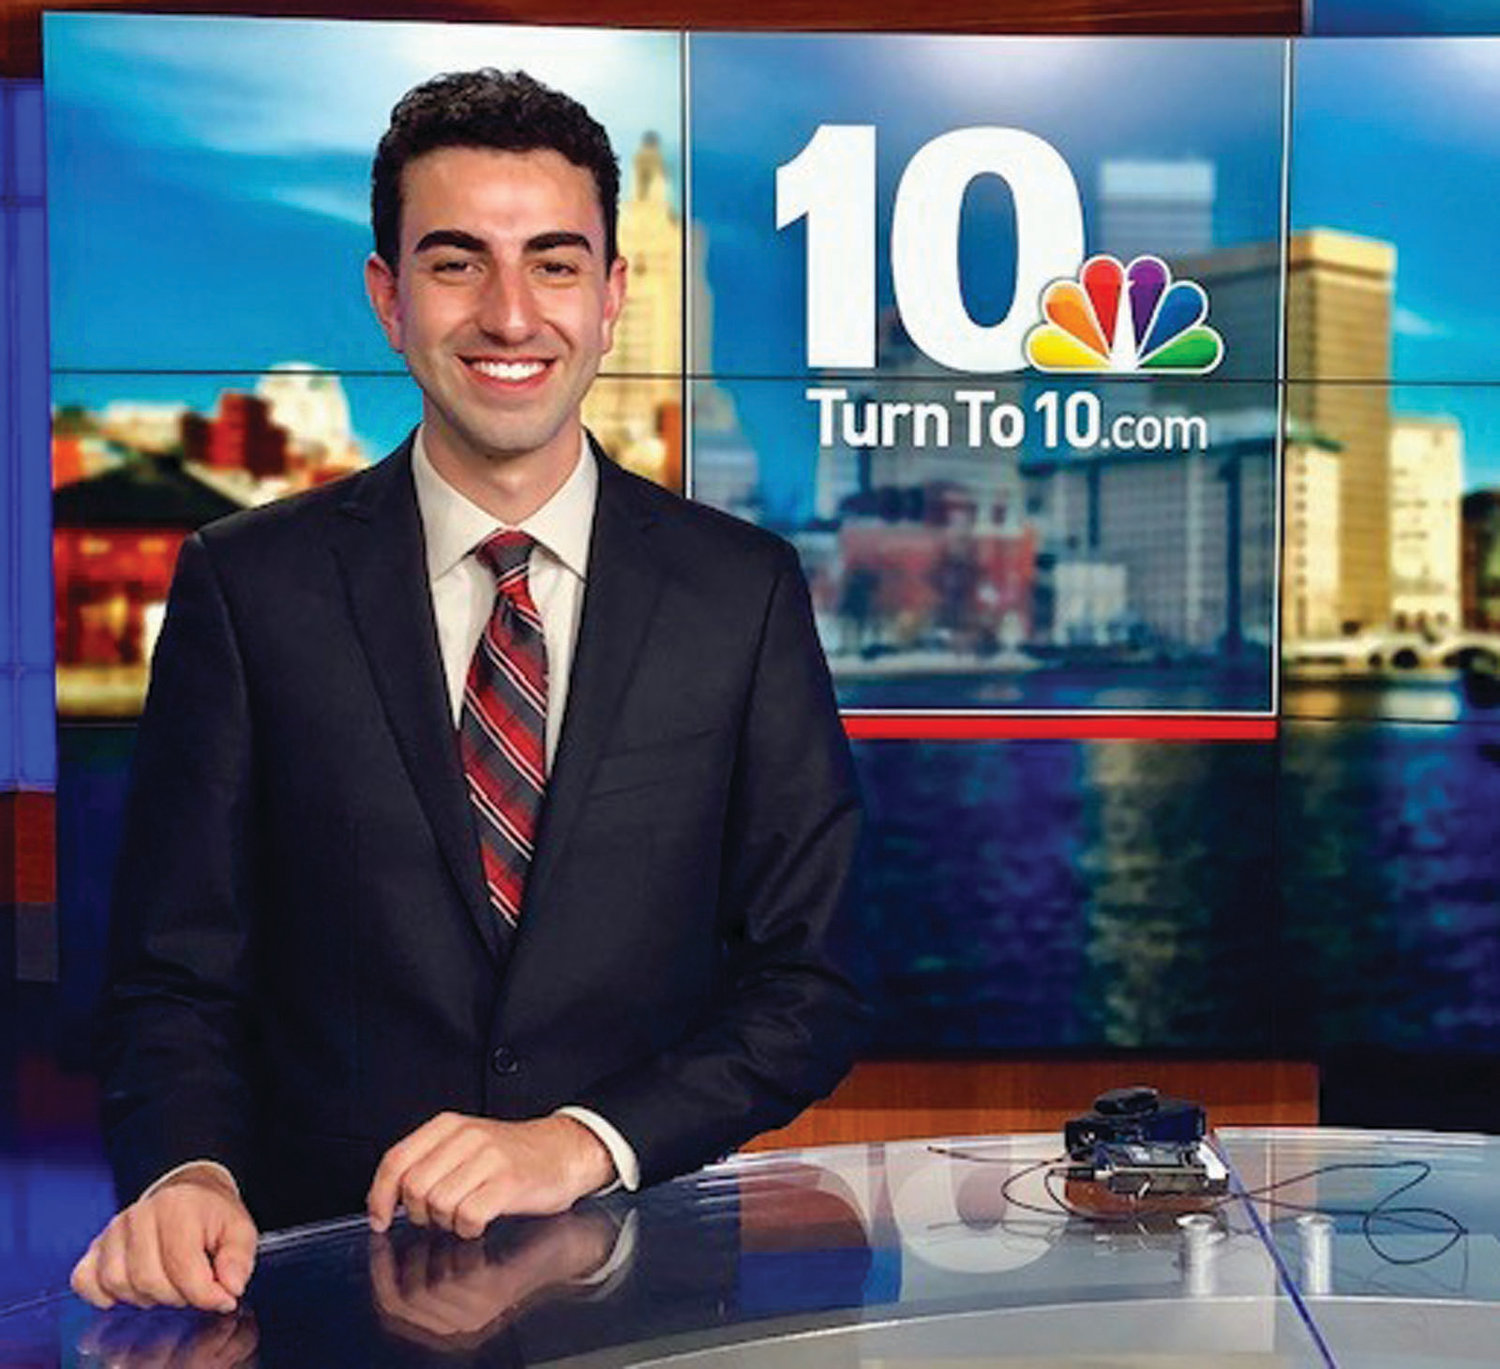 THERE FOR RHODE ISLAND, RAIN OR SHINE: Johnston's Anthony Macari was recently hired as a digital weather producer and meteorologist at NBC 10 WJAR, helping him achieve his dream of coming home to do what he loves in his home state.